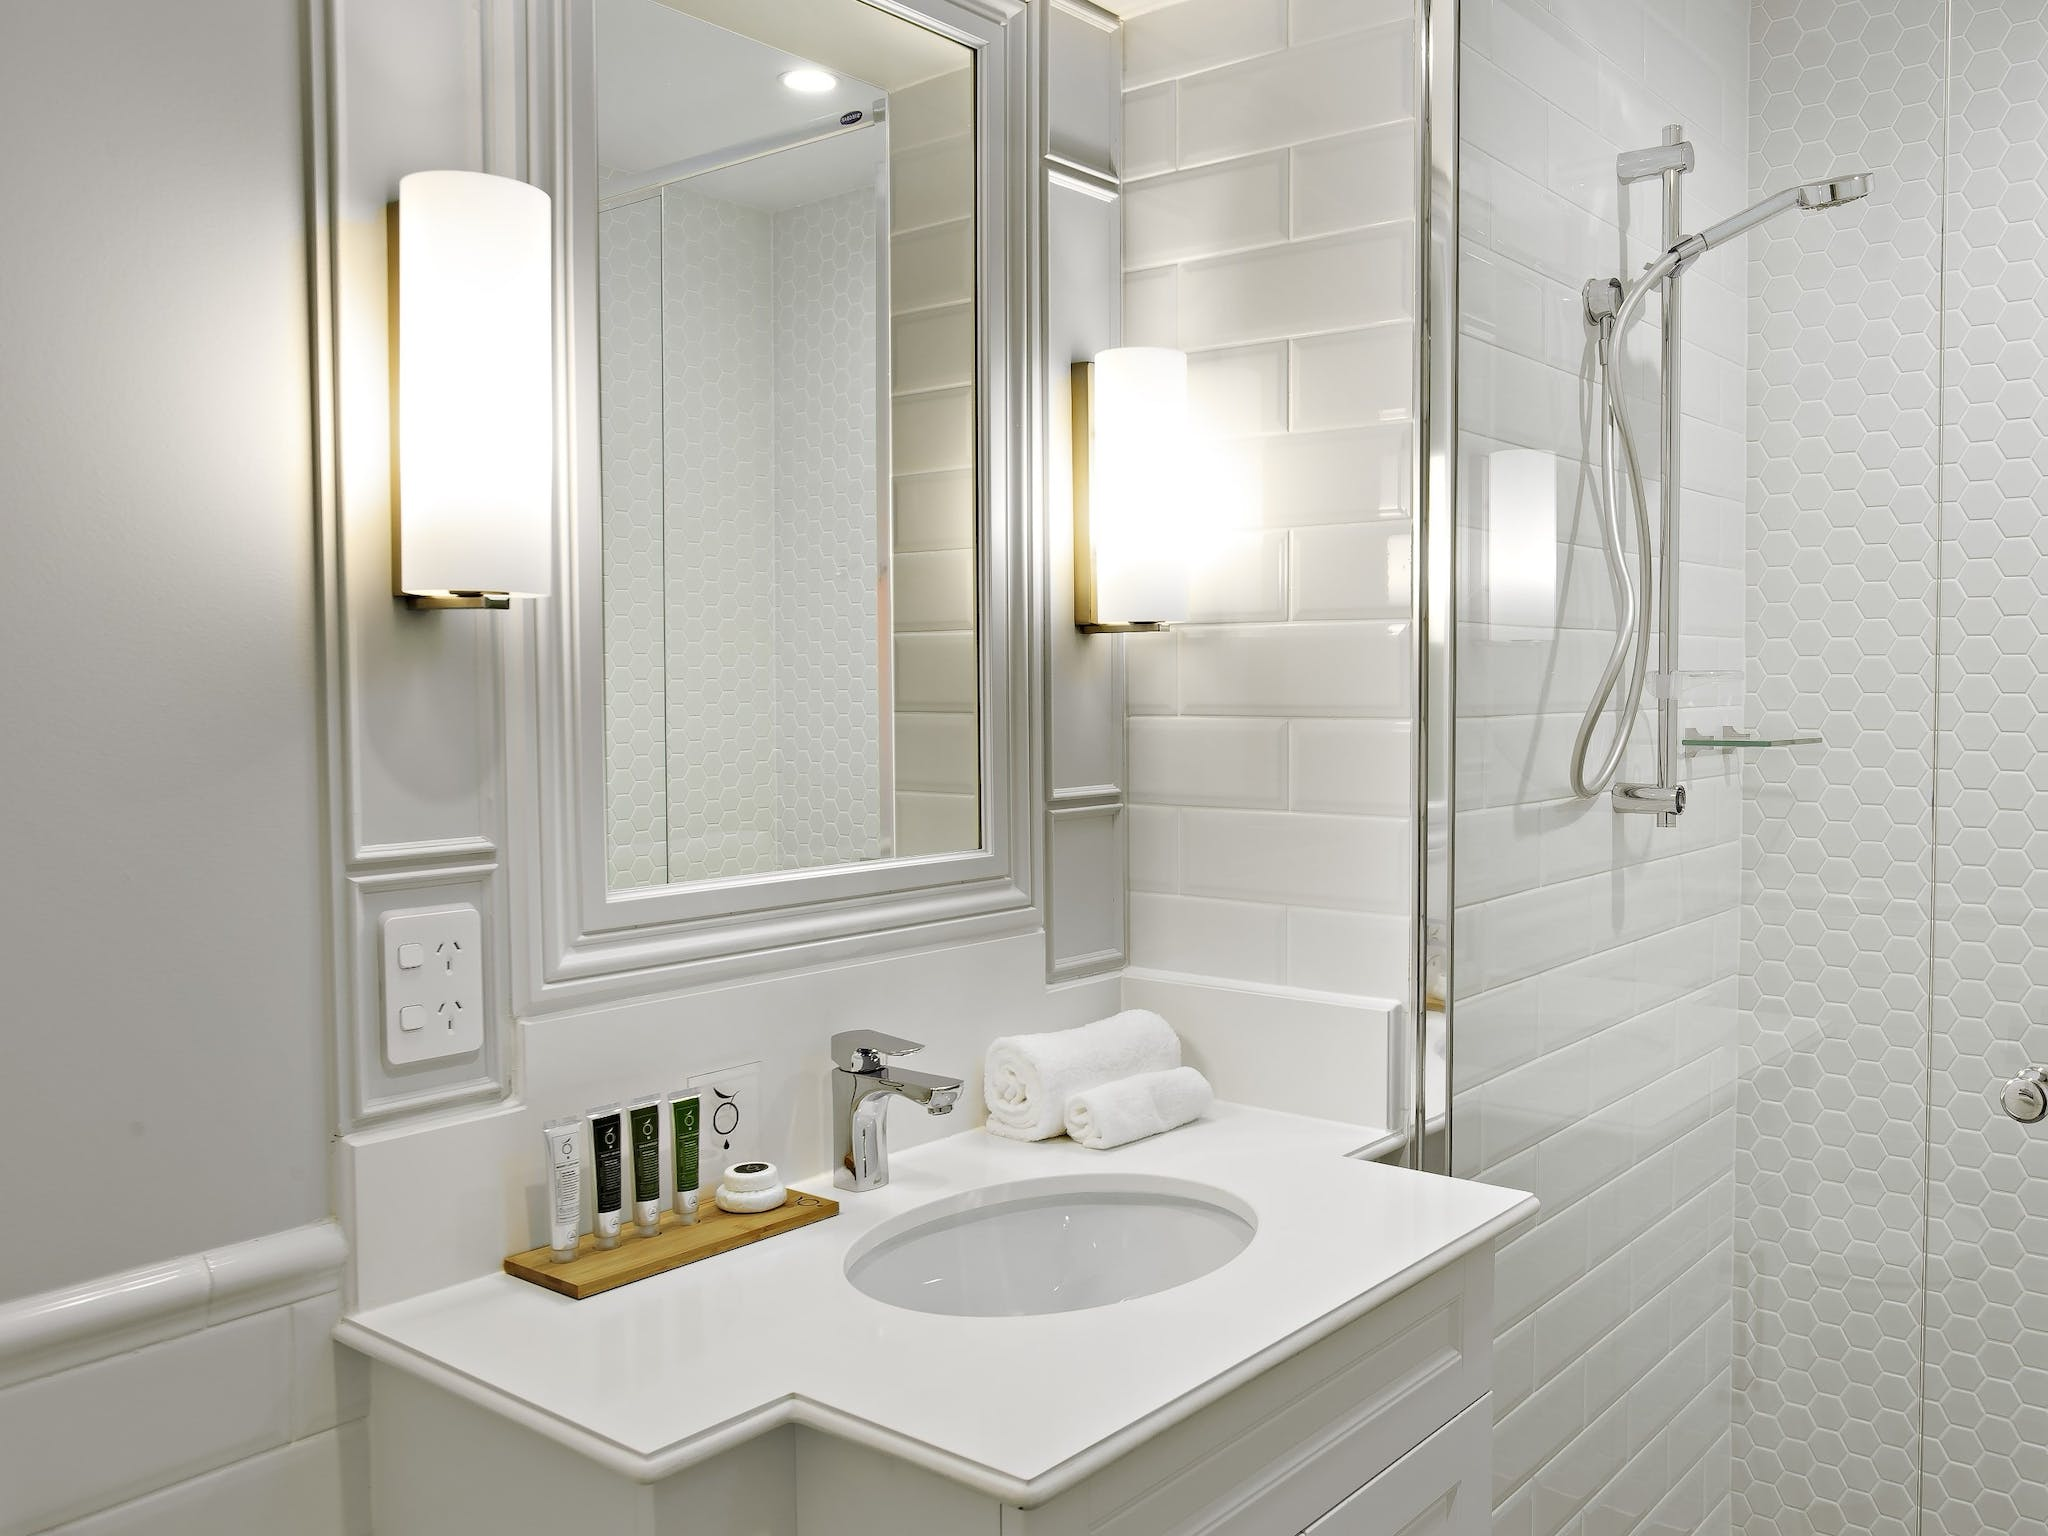 Large Bathroom with luxurious fittings